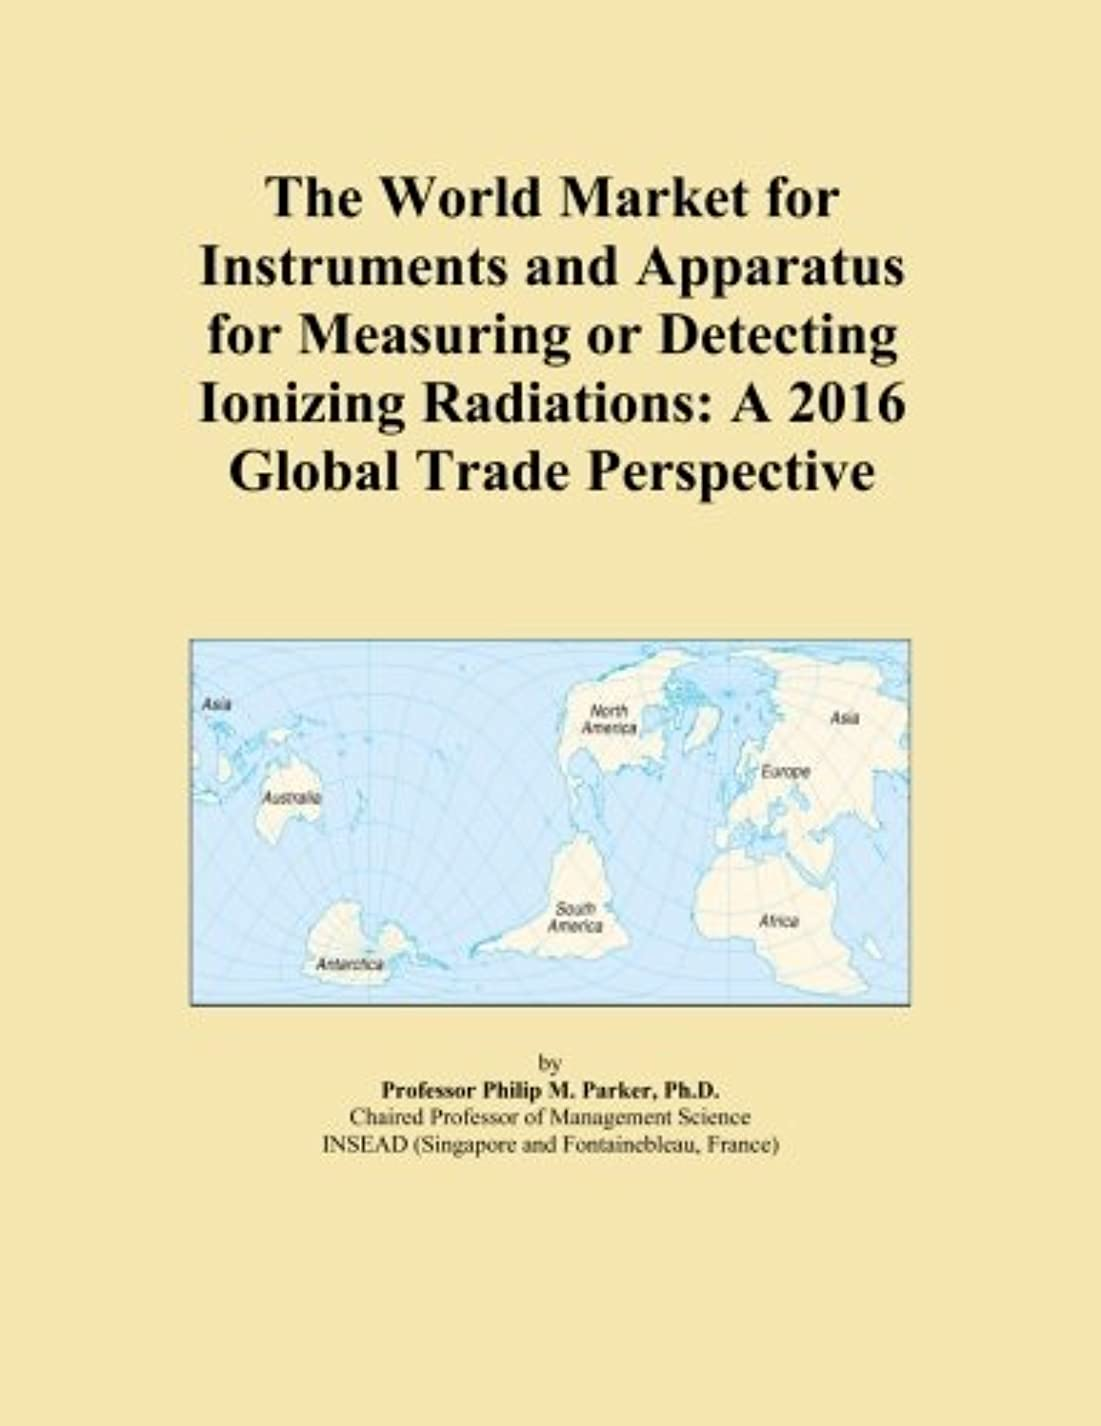 The World Market for Instruments and Apparatus for Measuring or Detecting Ionizing Radiations: A 2016 Global Trade Perspective